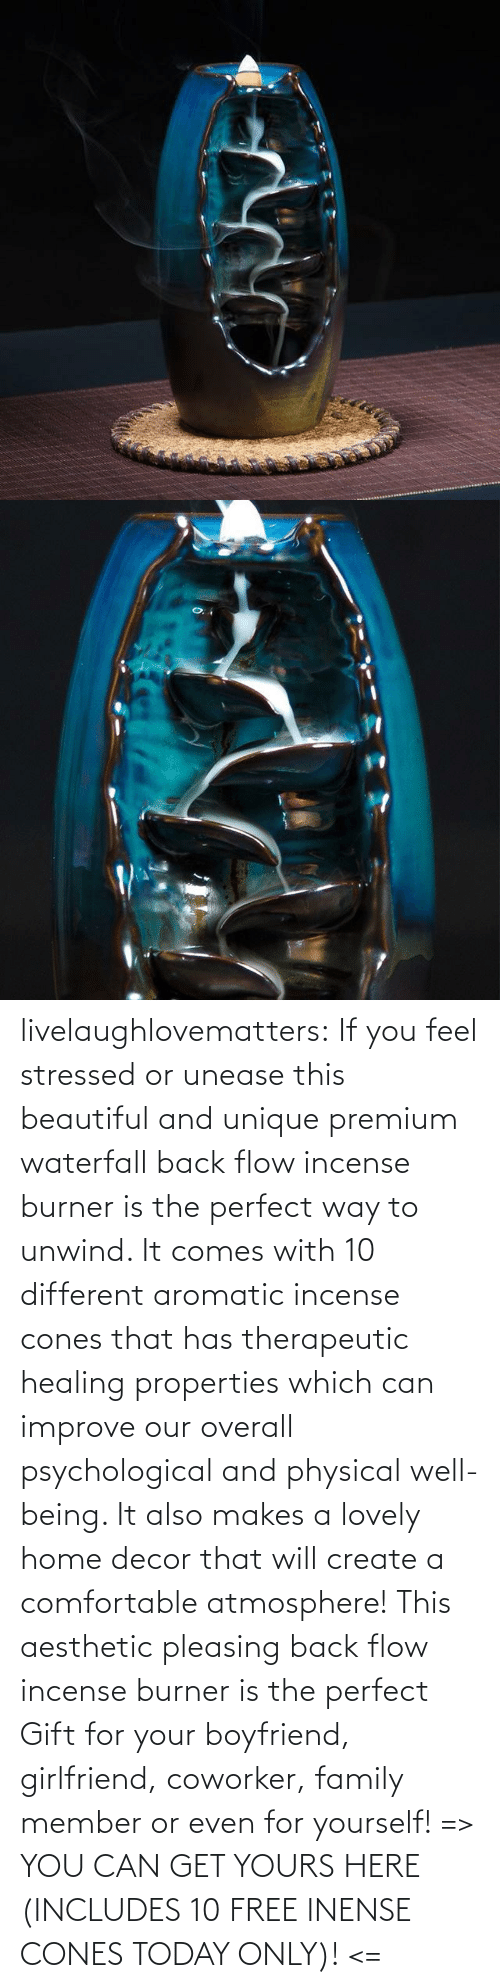 Member: livelaughlovematters: If you feel stressed or unease this beautiful and unique premium waterfall back flow incense burner is the perfect way to unwind. It comes with 10 different aromatic incense cones that has therapeutic healing properties which can improve our overall psychological and physical well-being. It also makes a lovely home decor that will create a comfortable atmosphere! This aesthetic pleasing back flow incense burner is the perfect Gift for your boyfriend, girlfriend, coworker, family member or even for yourself! => YOU CAN GET YOURS HERE (INCLUDES 10 FREE INENSE CONES TODAY ONLY)! <=